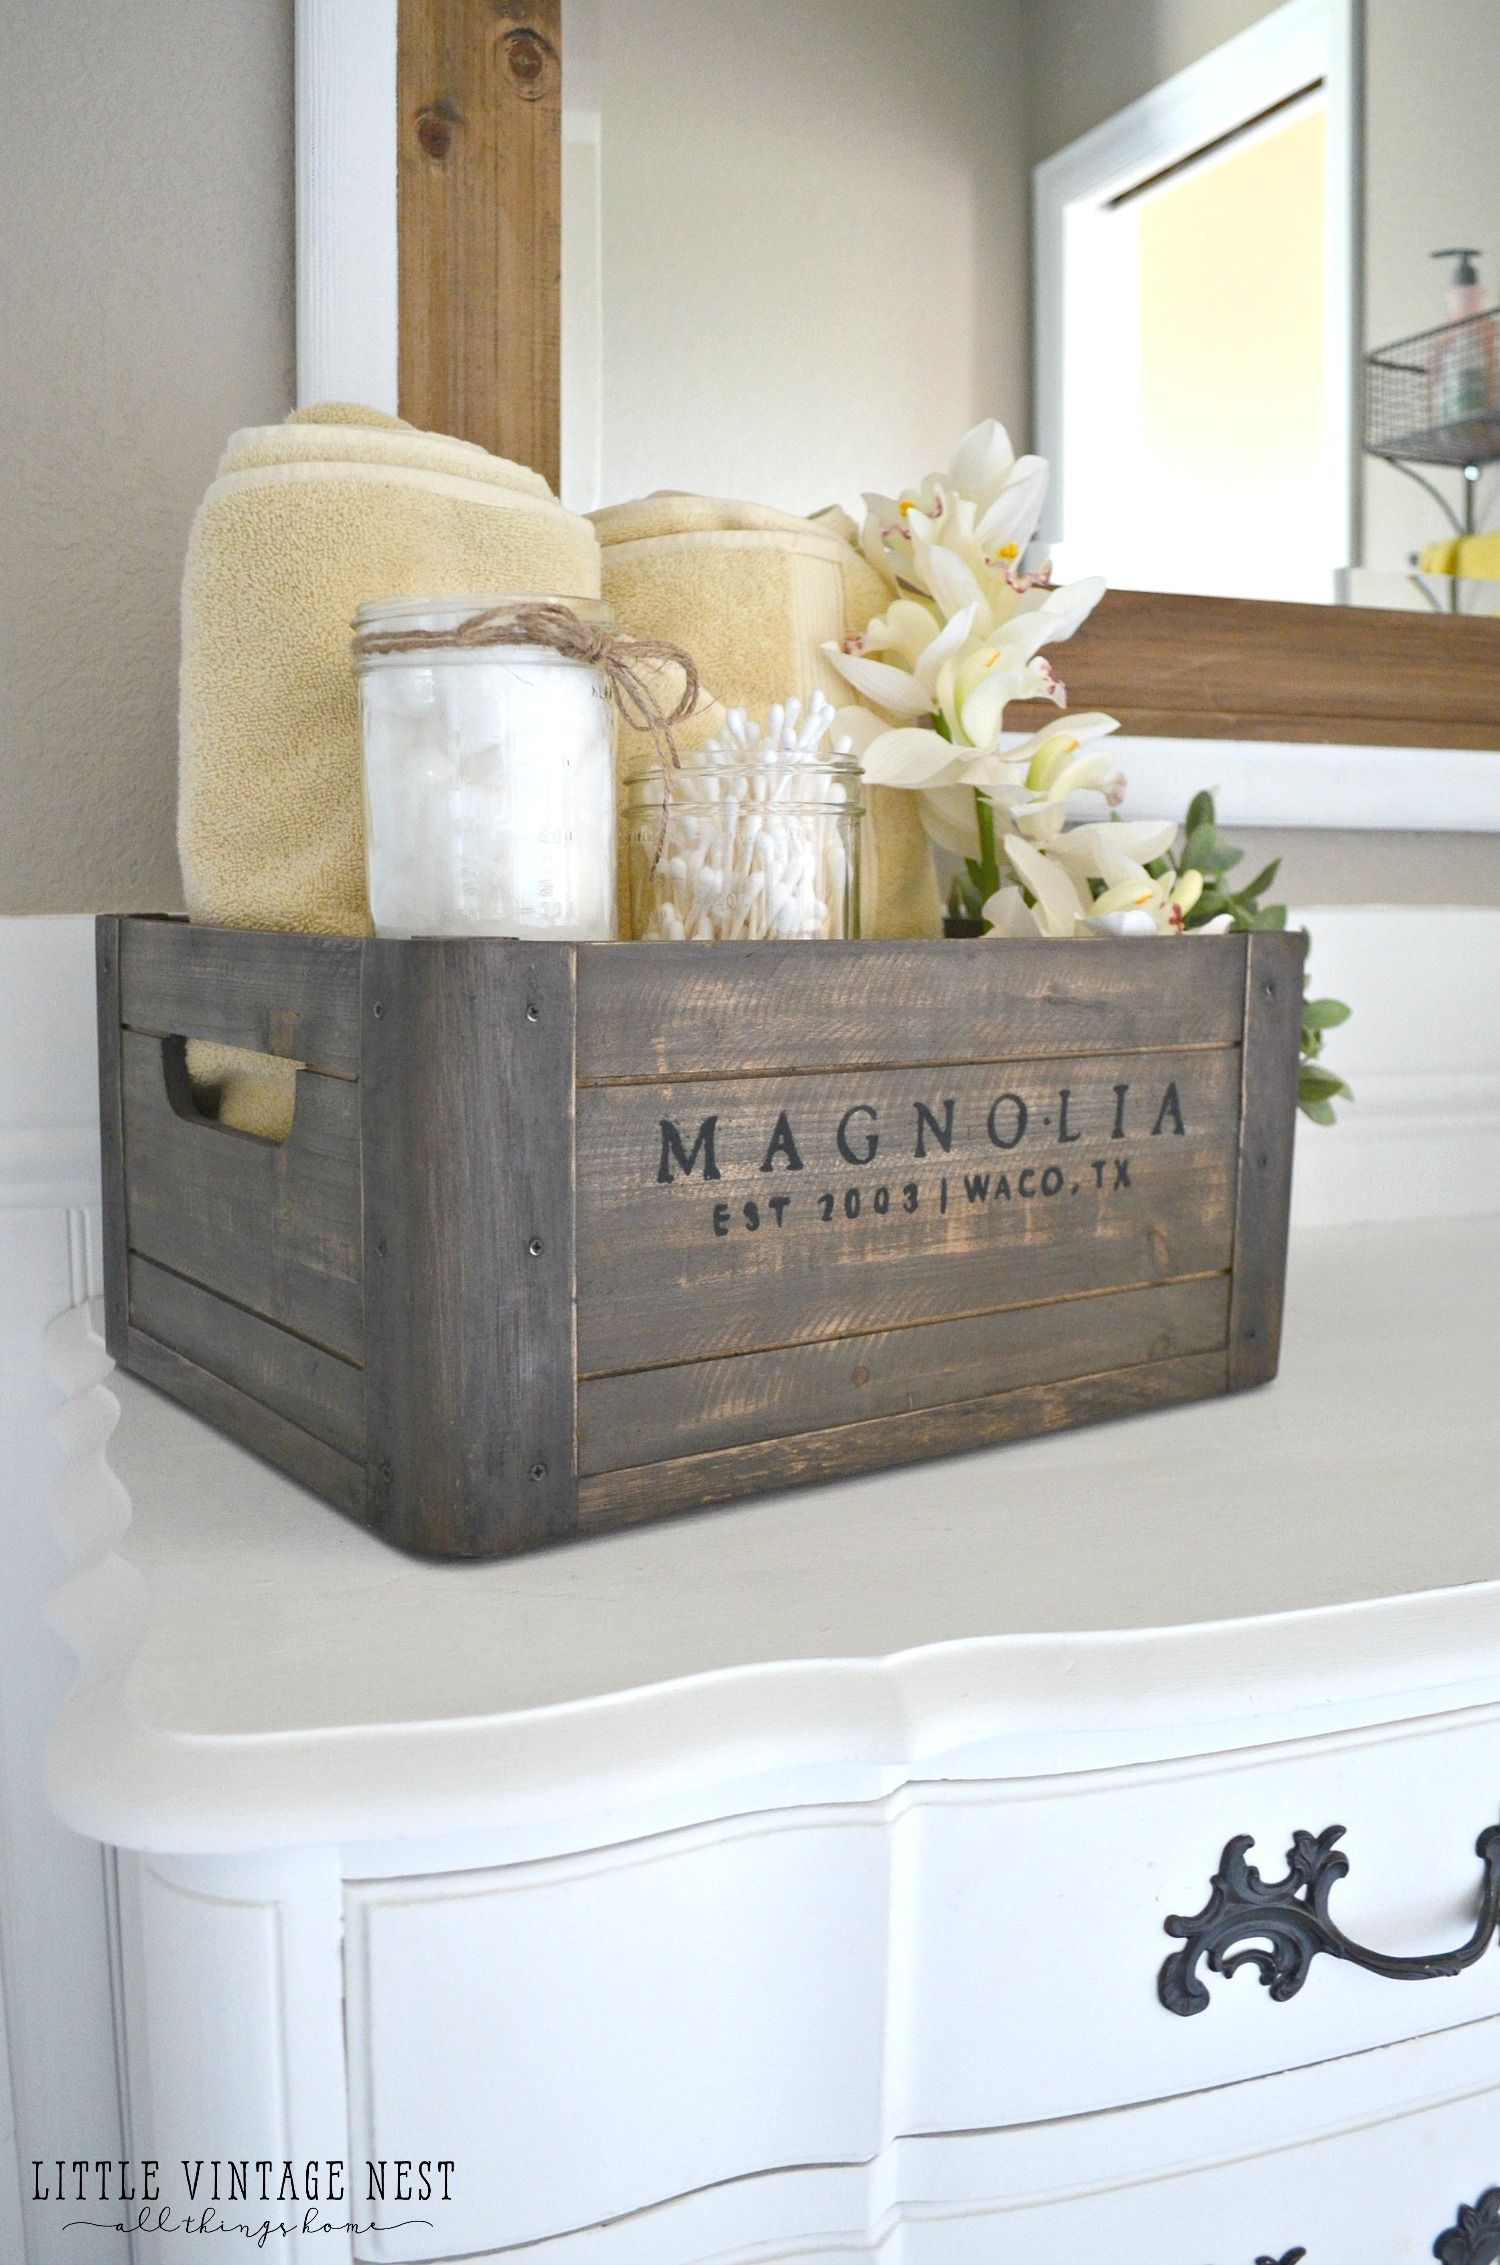 5 Ways to Style a Wooden Crate - Little Vintage Nest